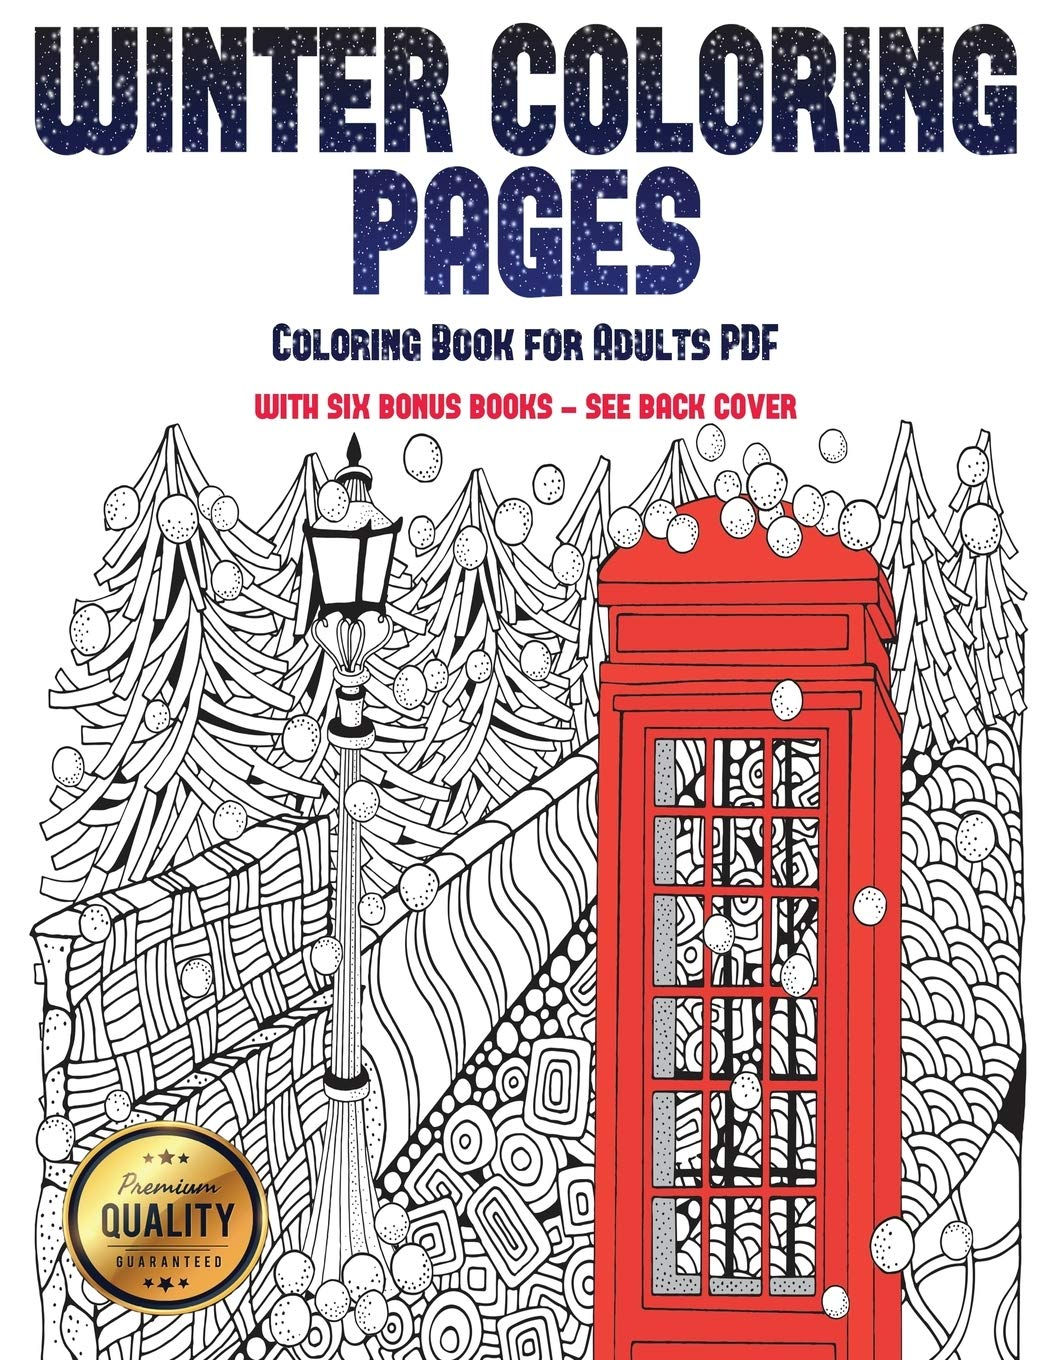 Amazon Com Coloring Book For Adults Pdf Winter Coloring Pages Winter Coloring Pages This Book Has 30 Winter Coloring Pages That Can Be Used To Color In Photocopied Printed And Downloaded As